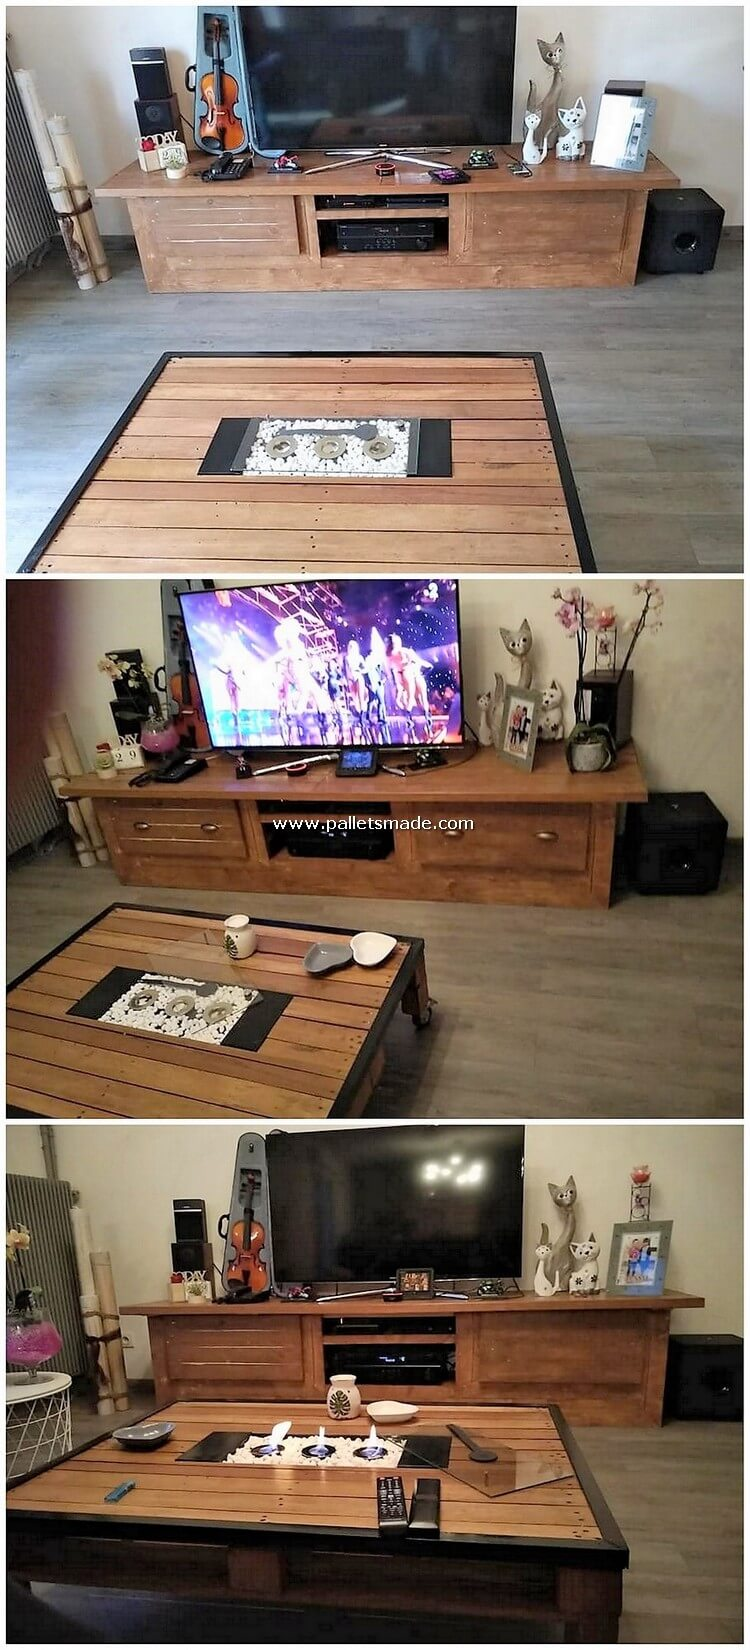 Pallet Media Cabinet and Coffee Table